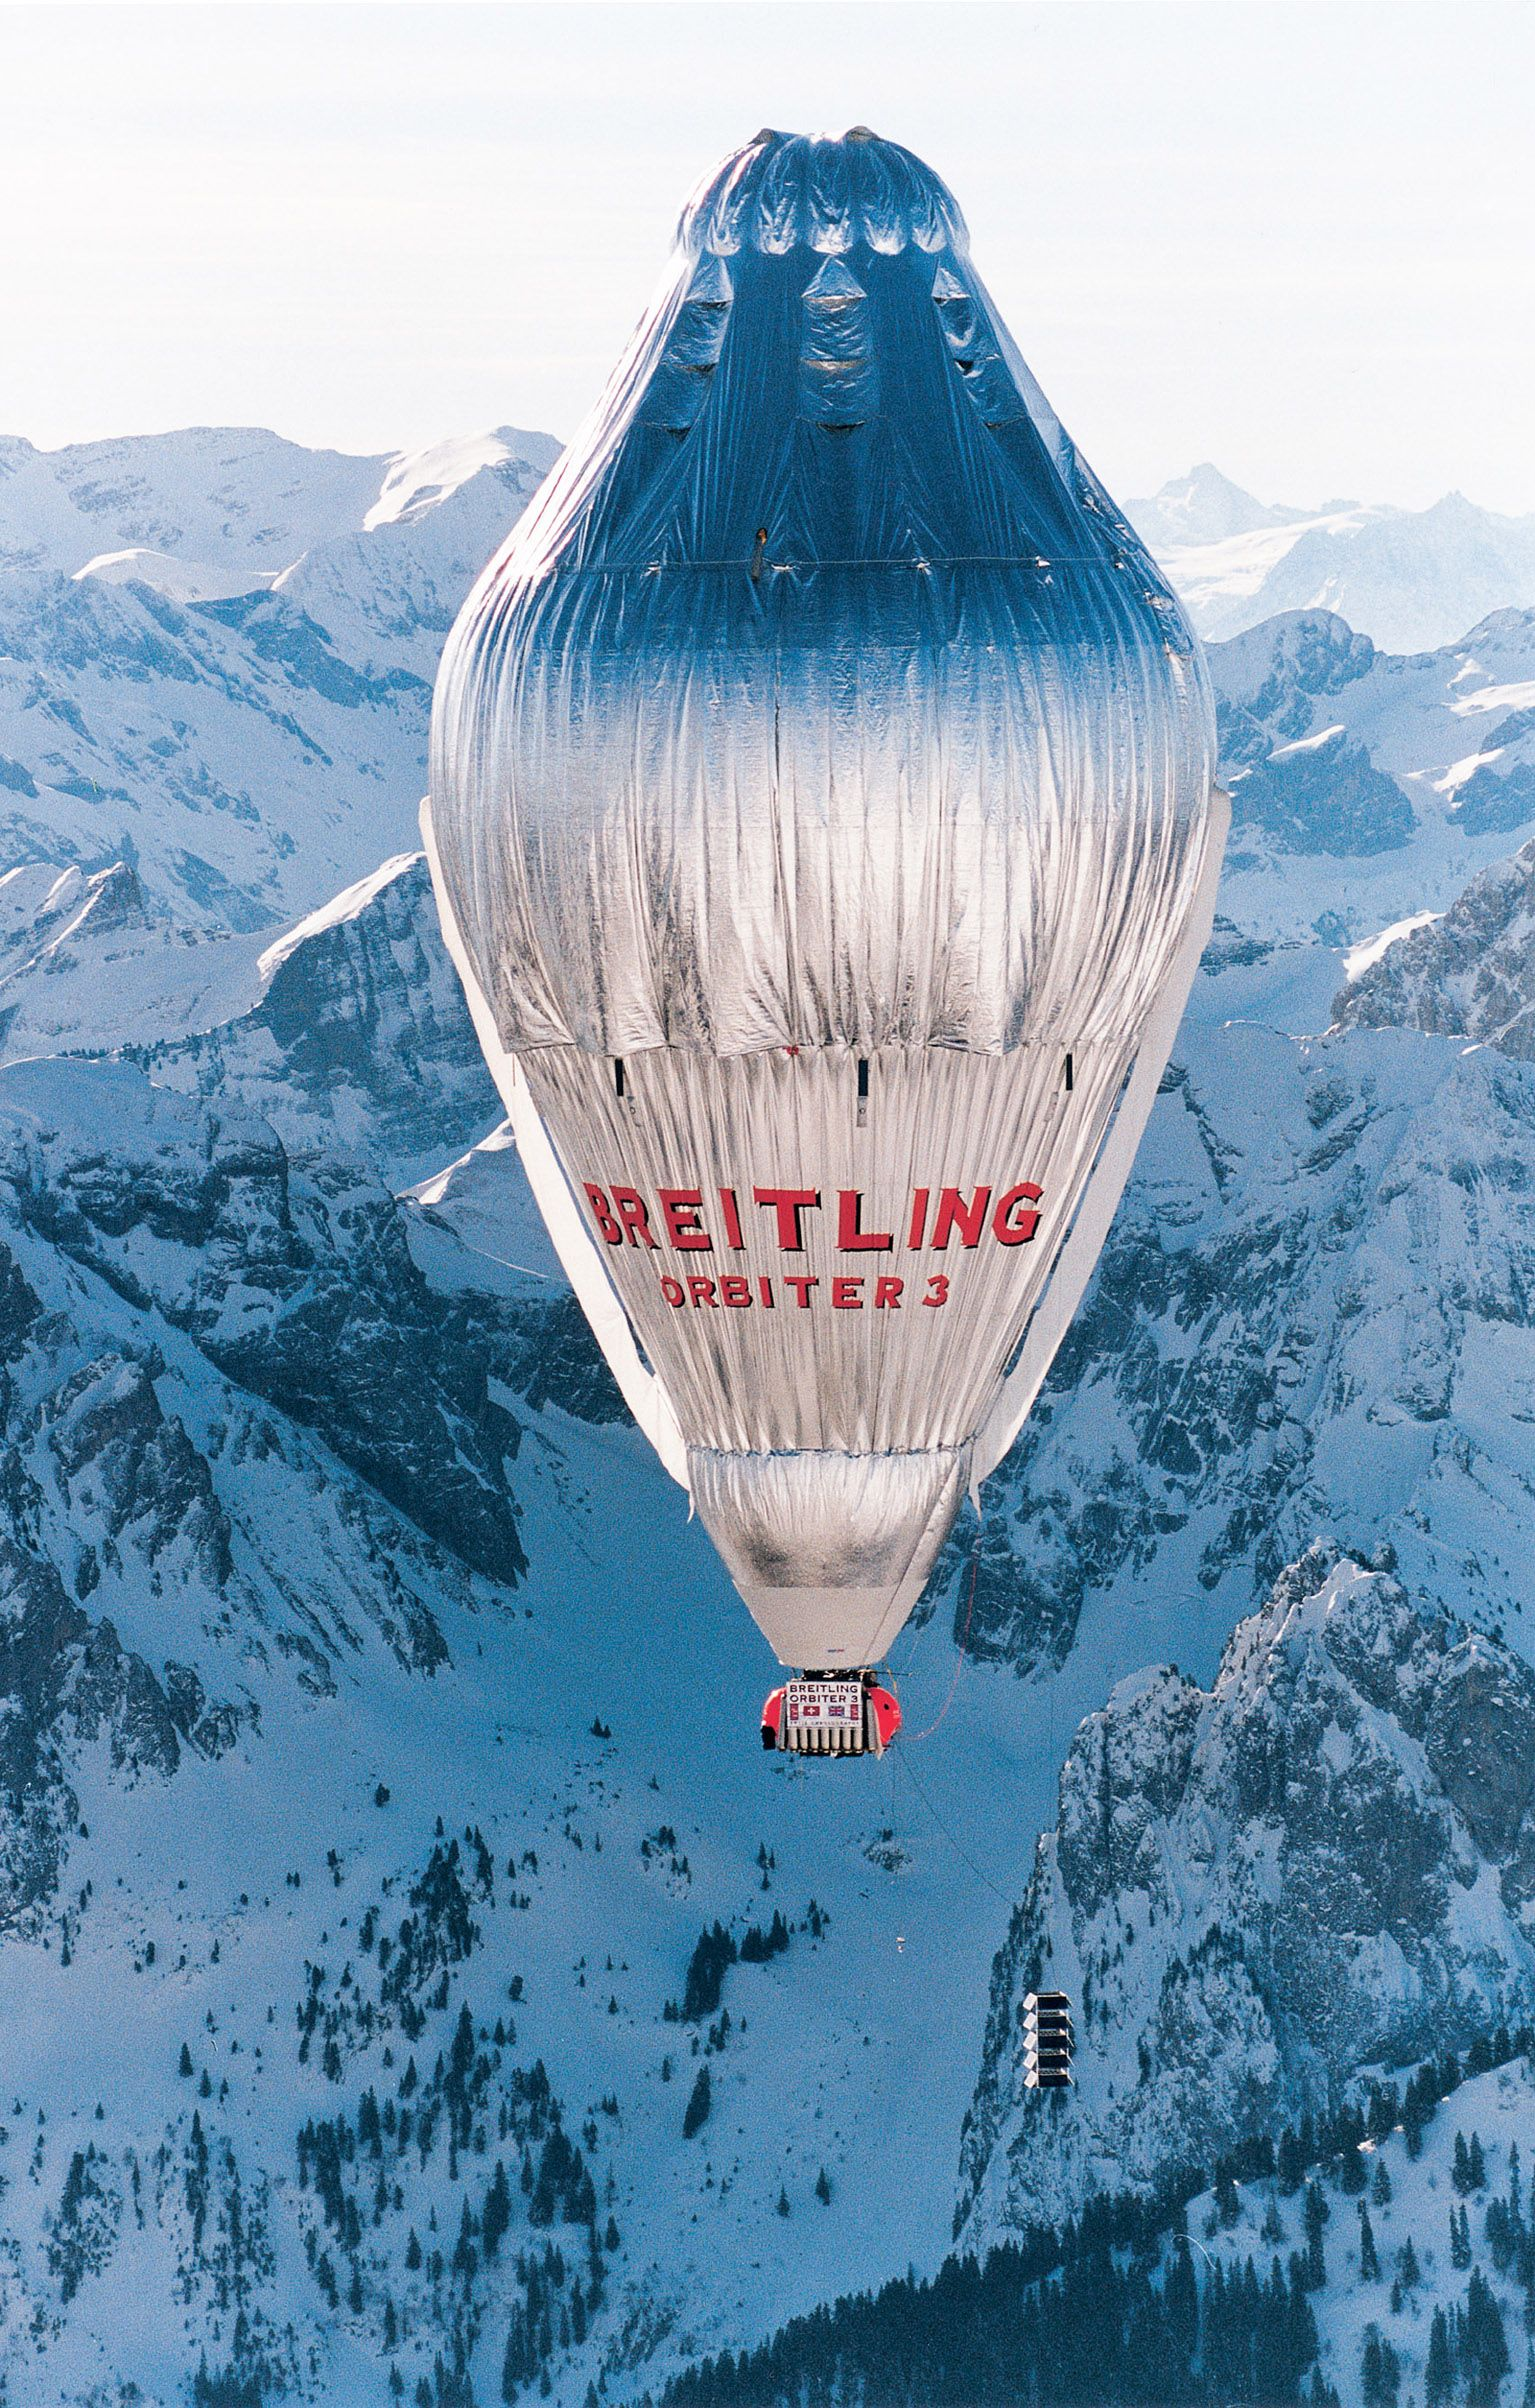 On March 1, 1999, Bertrand Piccard and Brian Jones lifted off from the Swiss alpine village of Chateau d'Oex in the Breitling Orbiter 3 on the first nonstop flight around the world in a balloon. | Source: Brian Jones/Oribterballoon.com